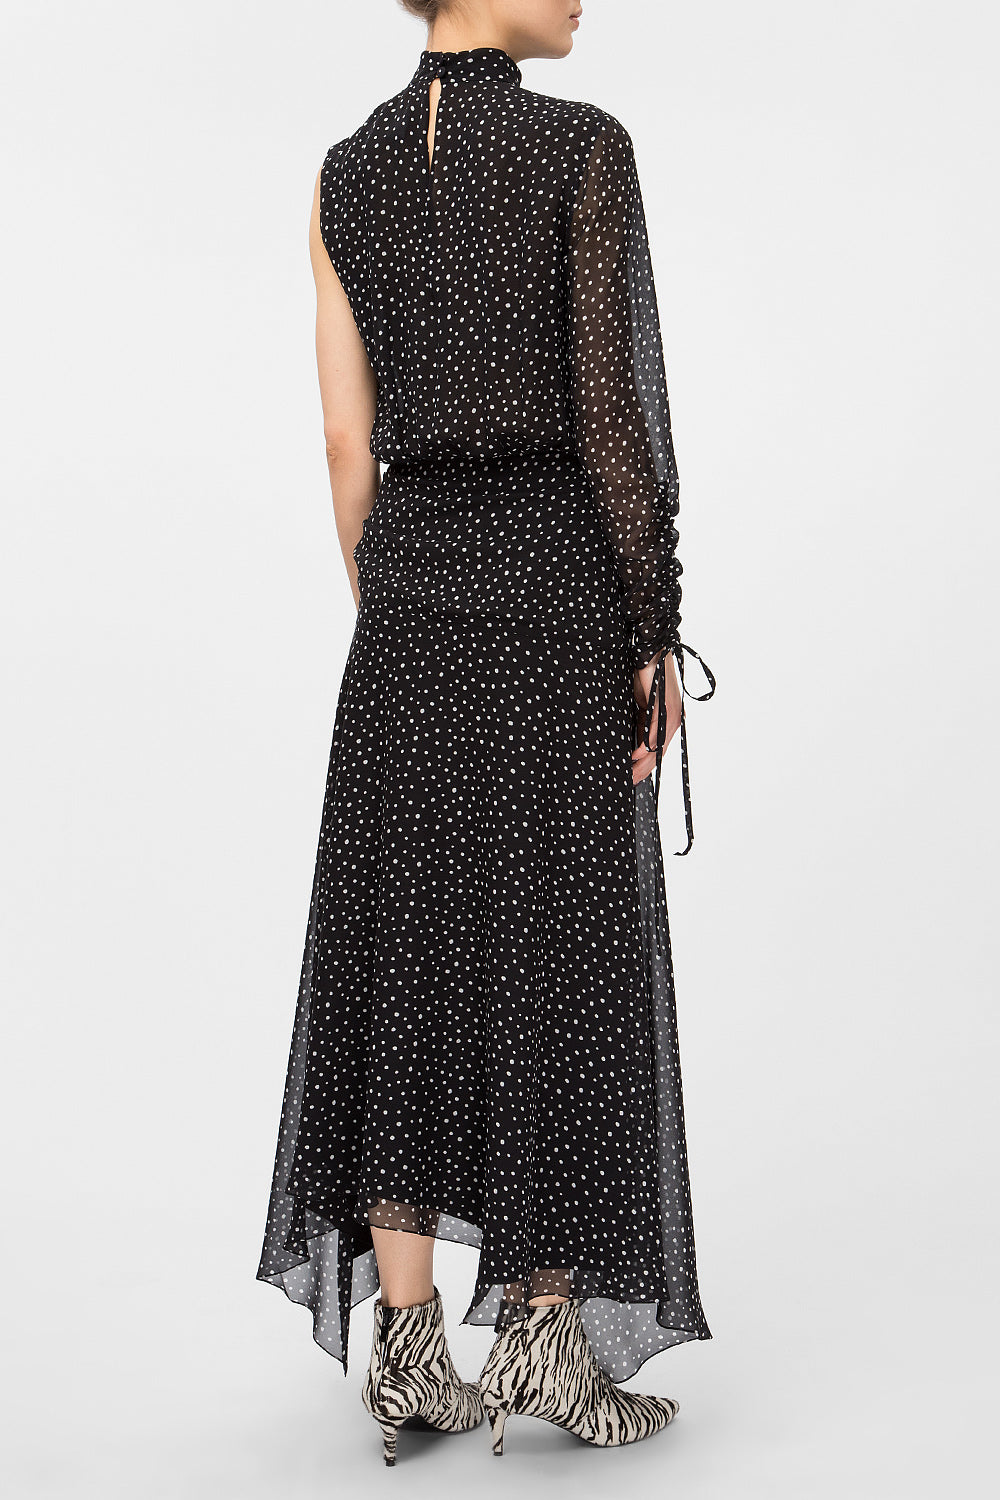 Polka-dot midi dress with one sleeve